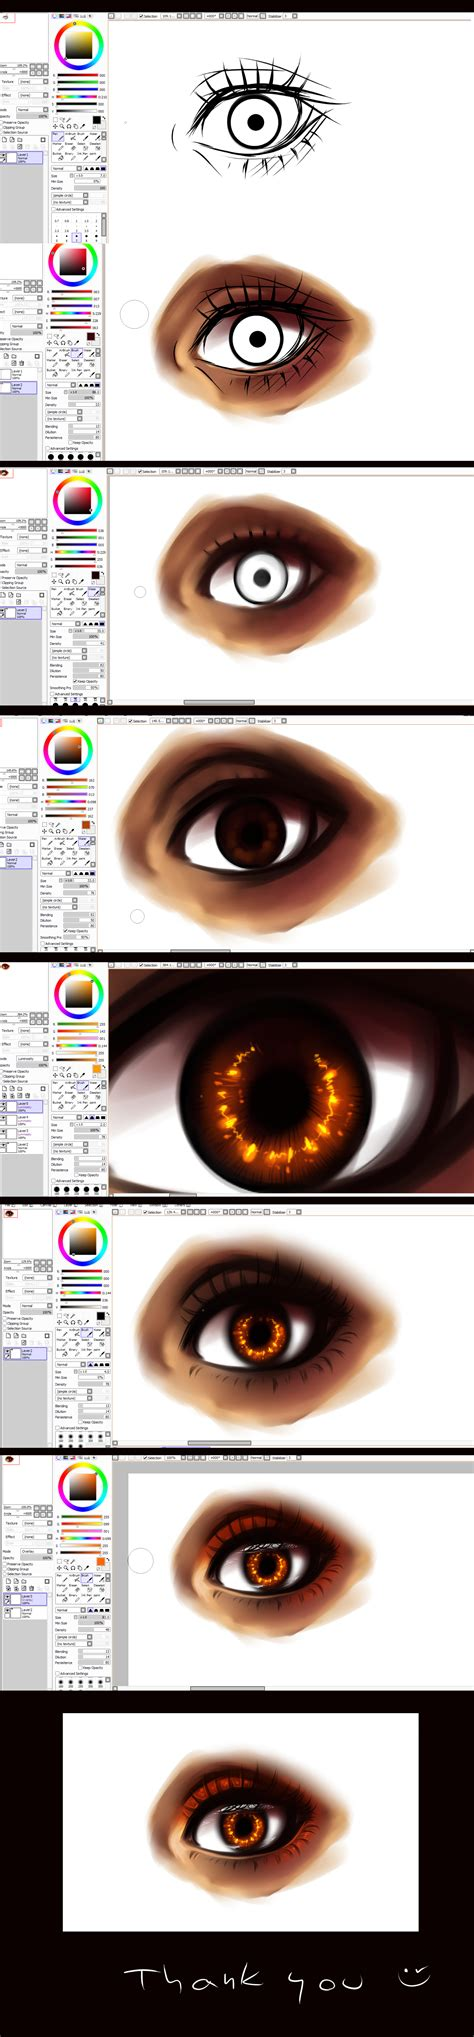 paint tool sai tutorial paint tool sai eye tutorial by ryky on deviantart